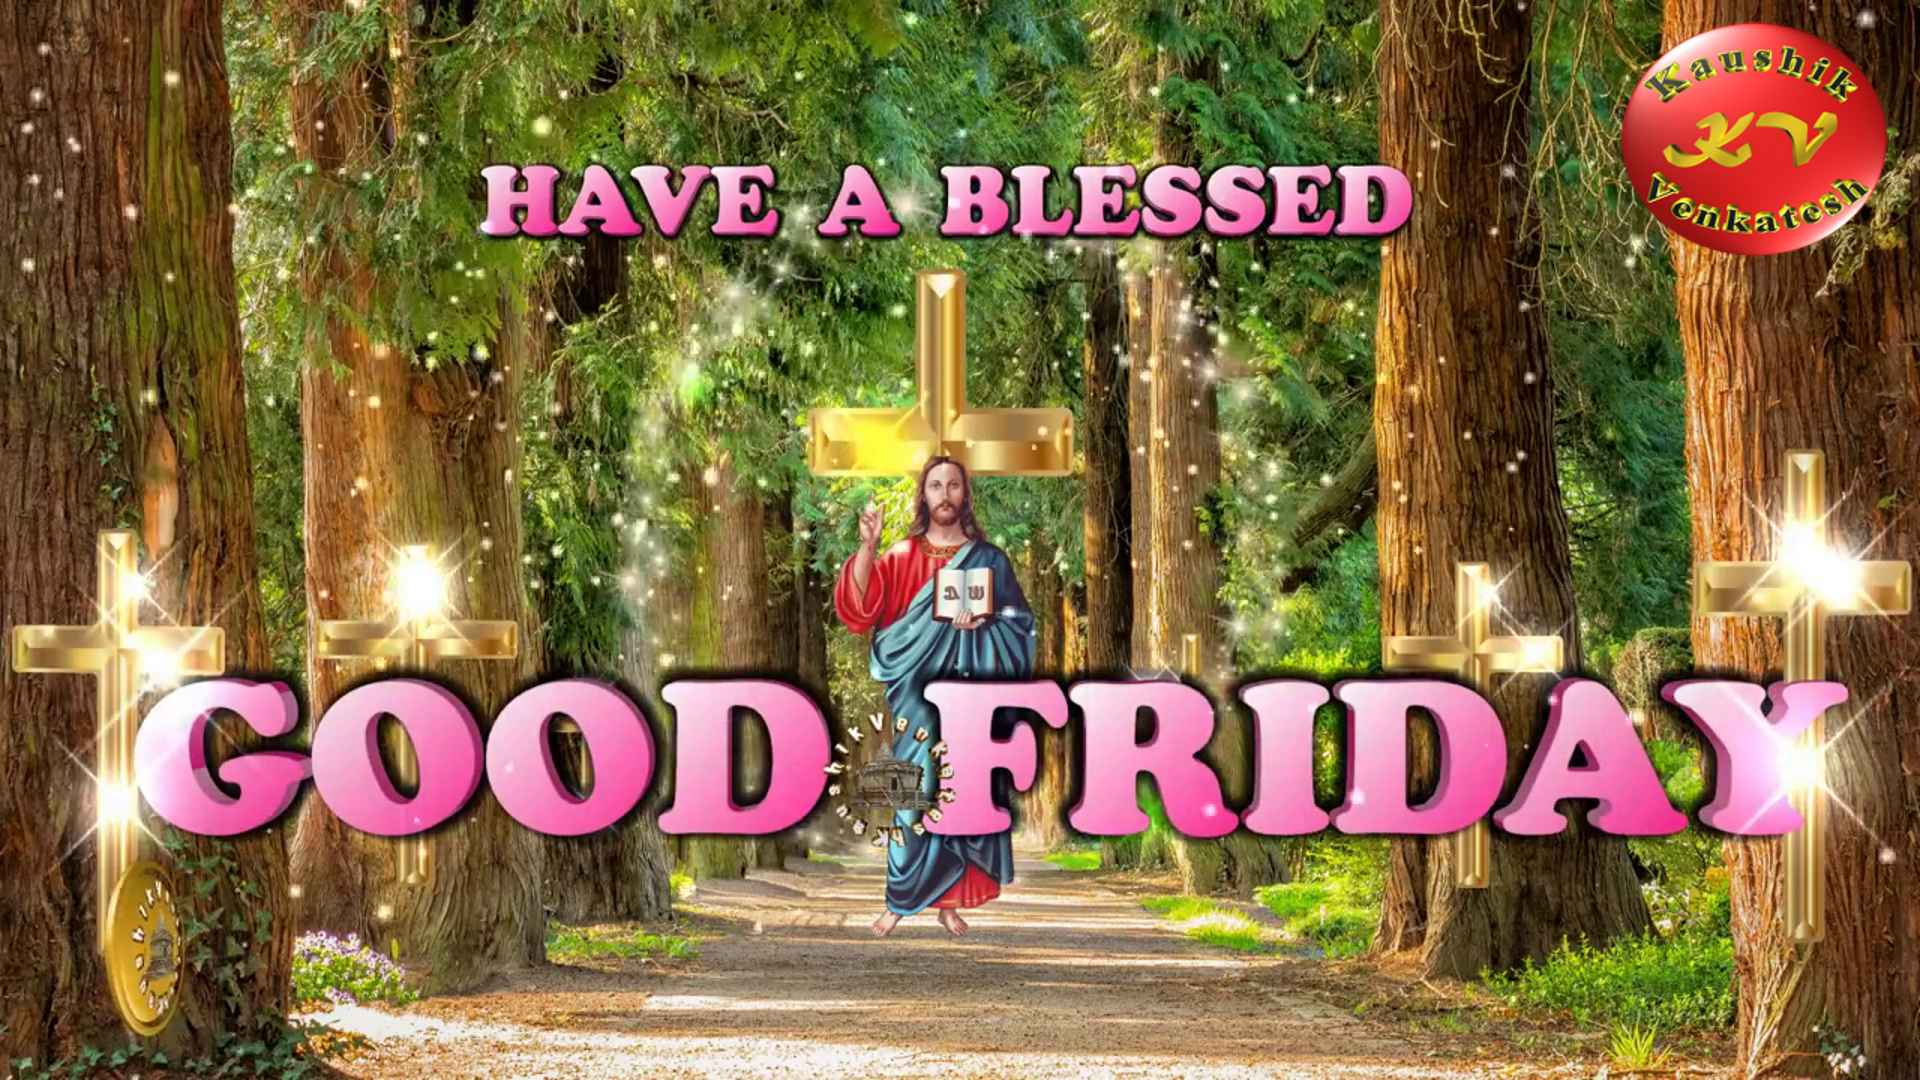 Good Friday Images HD Download